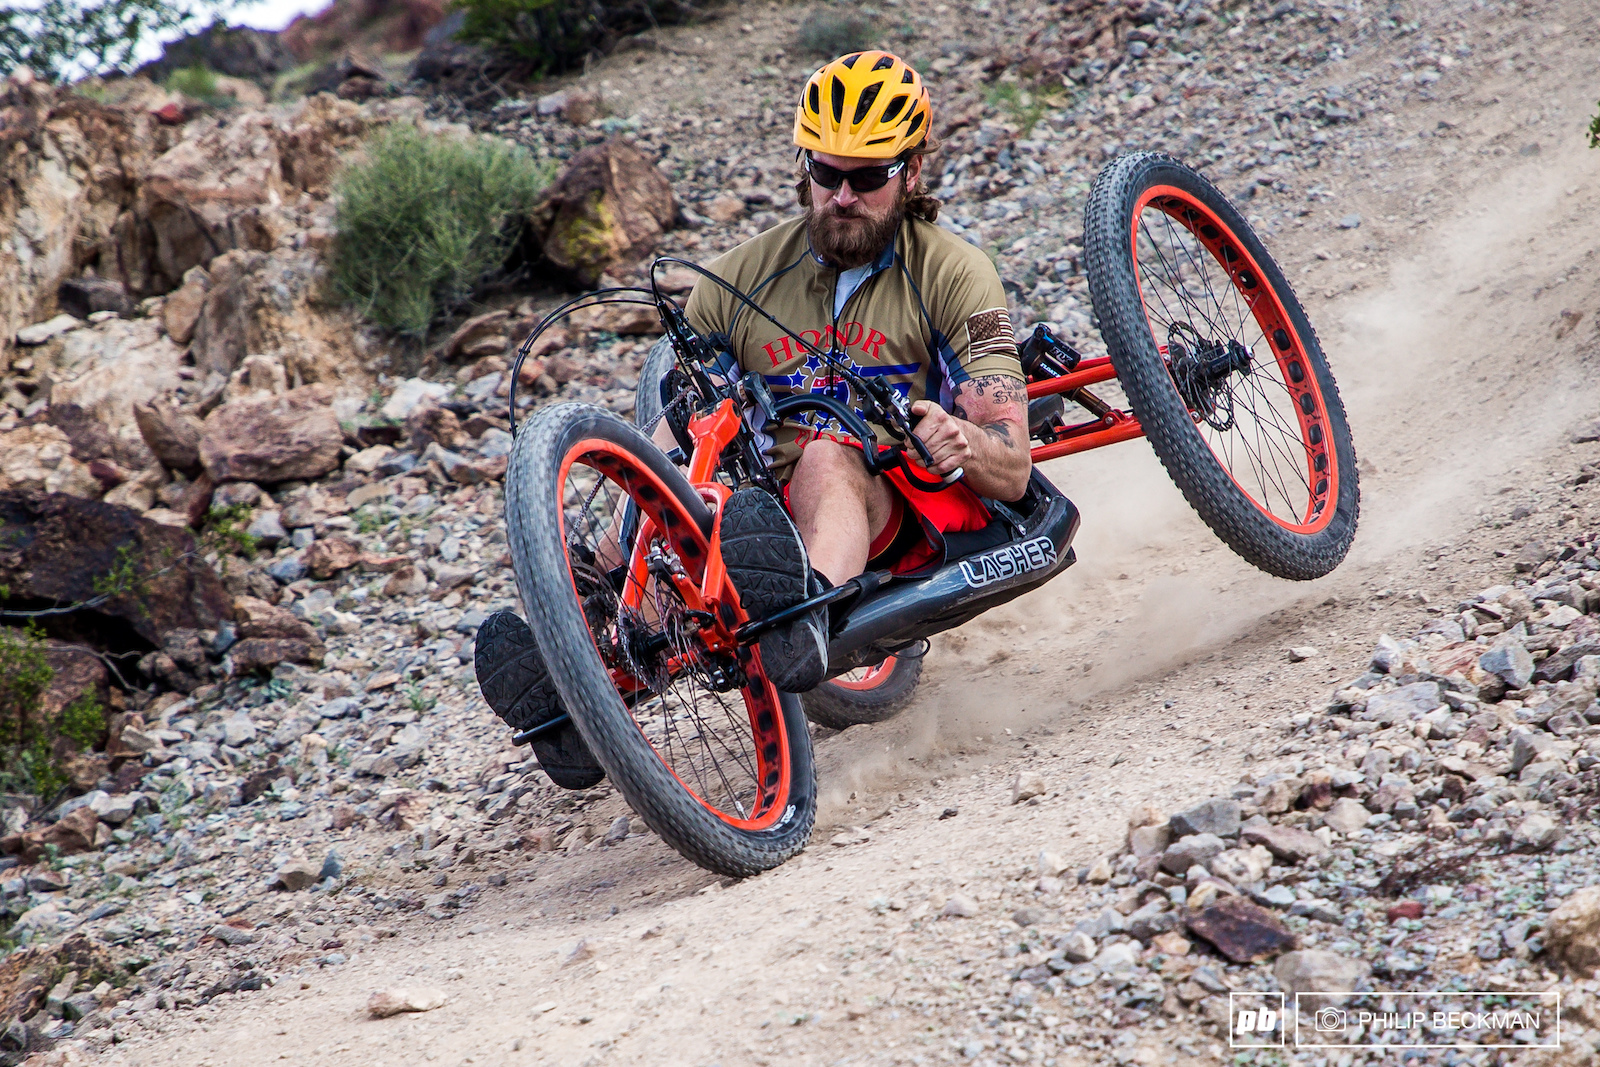 A highly inspirational Handcycle Enduro was featured at Reaper Madness. Three adaptive athletes competed in a Super D a Downhill and the Dual Slalom.